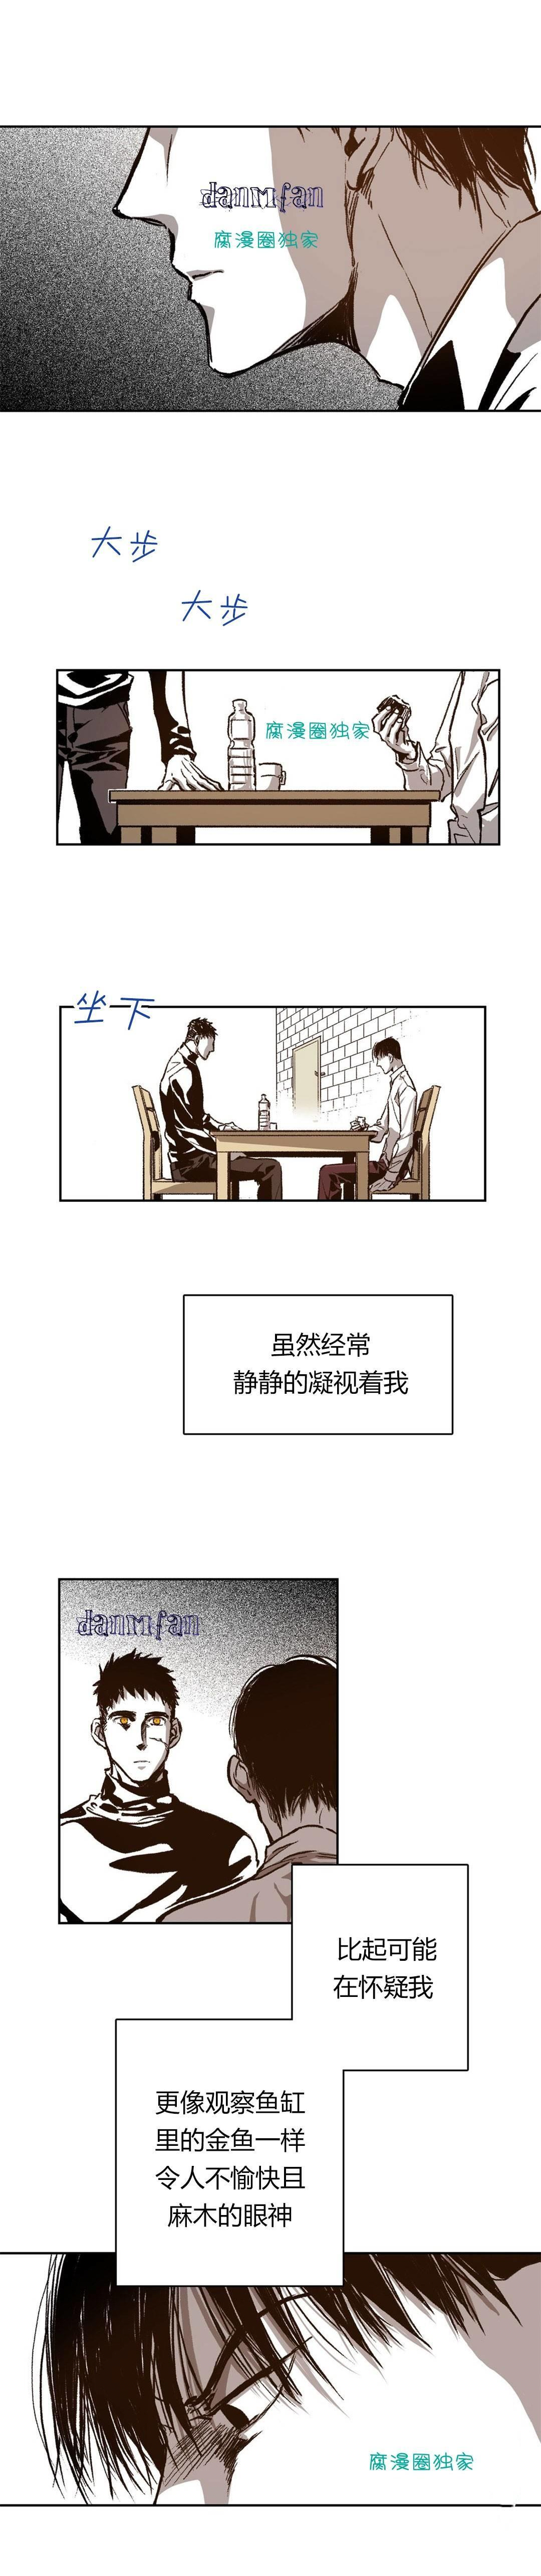 Warehouse chapter 26 10